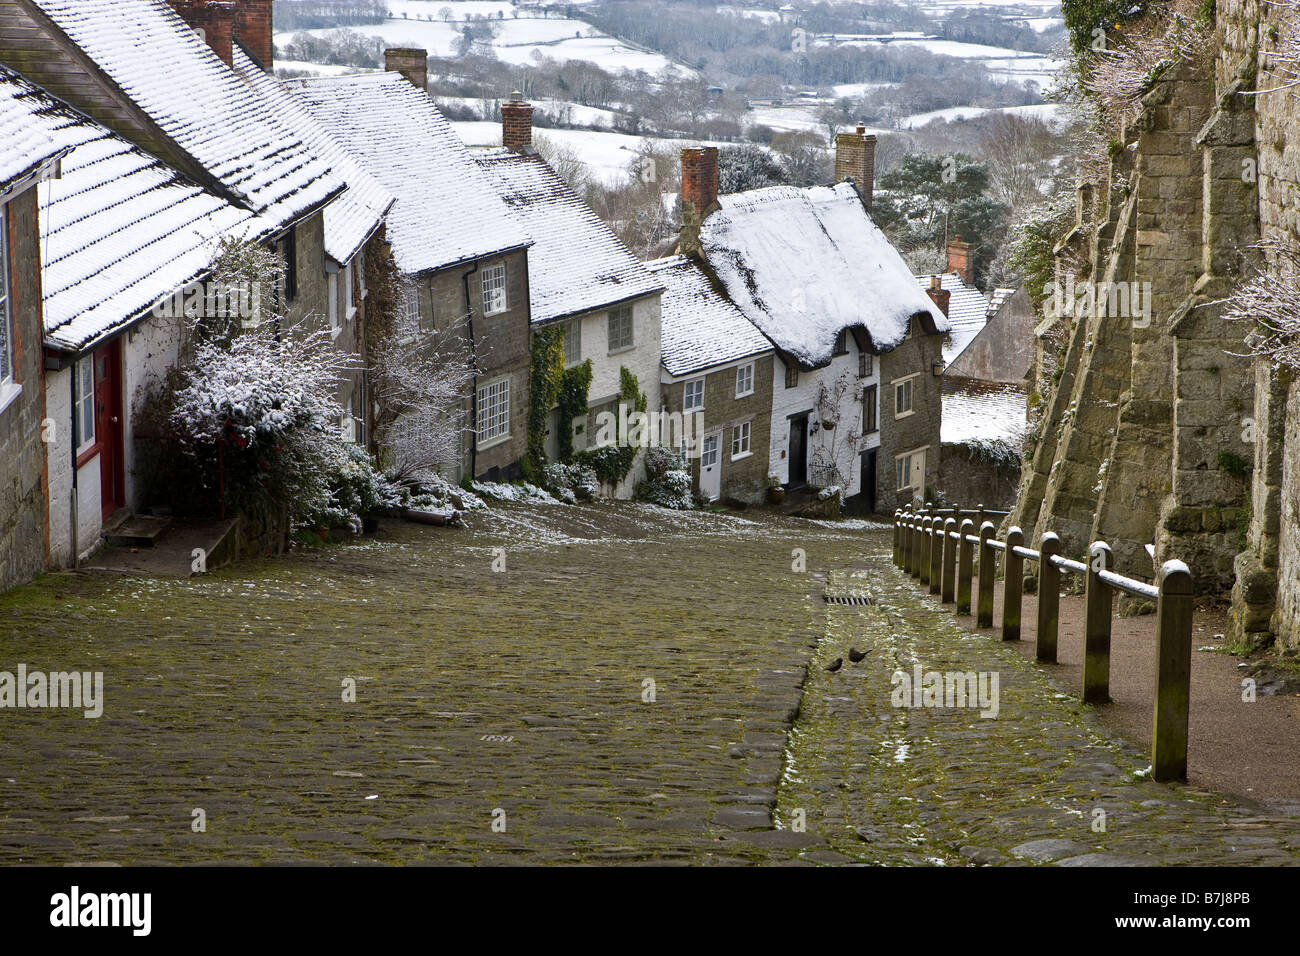 Gold Hill in Winter, Shaftesbury, Dorset, England - Stock Image